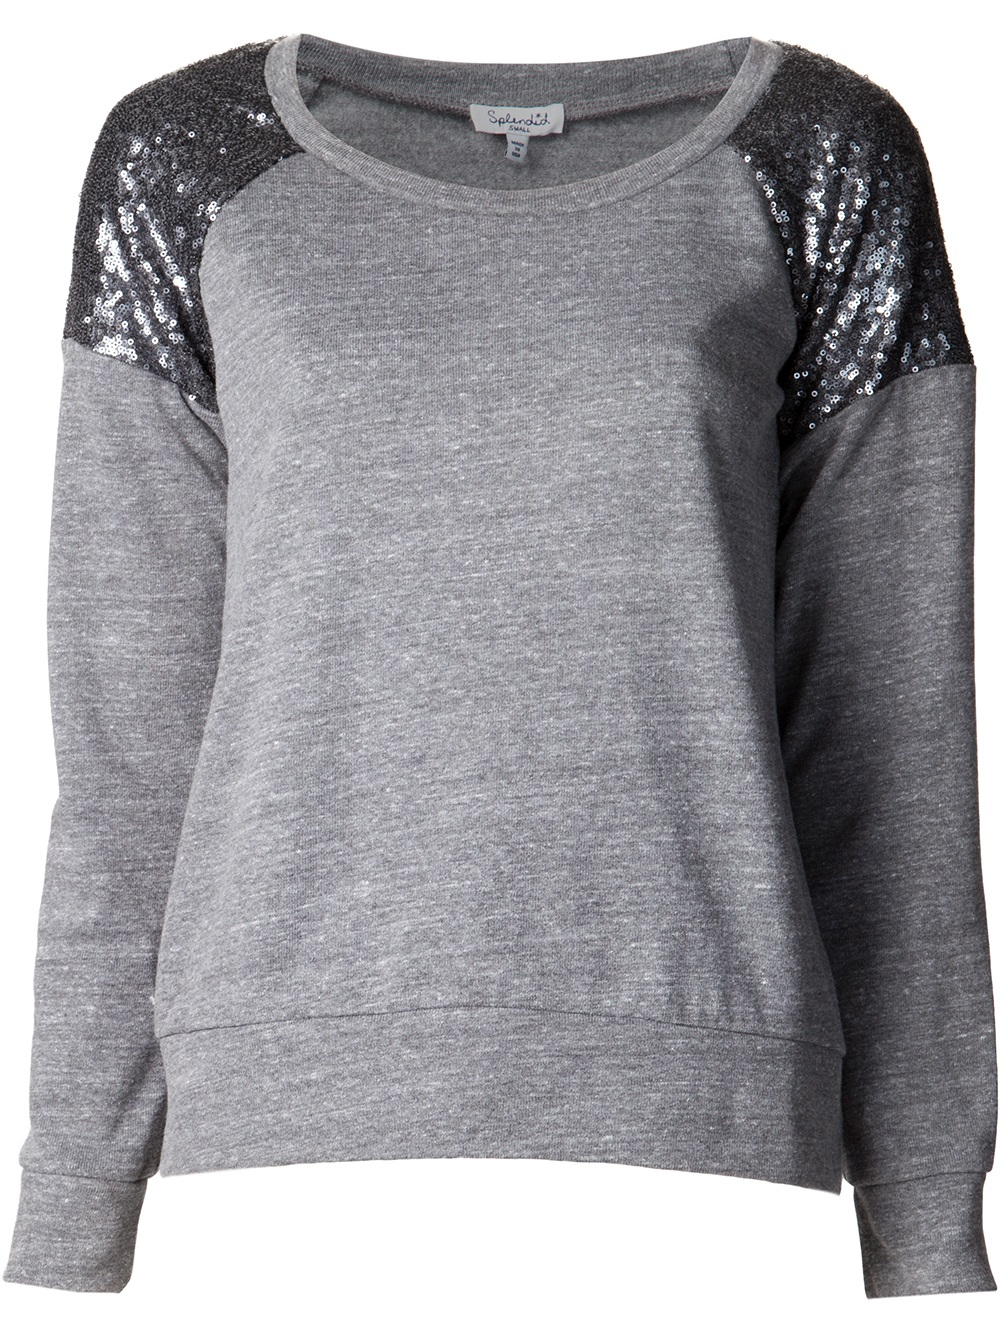 Splendid Sequin Pullover Sweater in Gray | Lyst